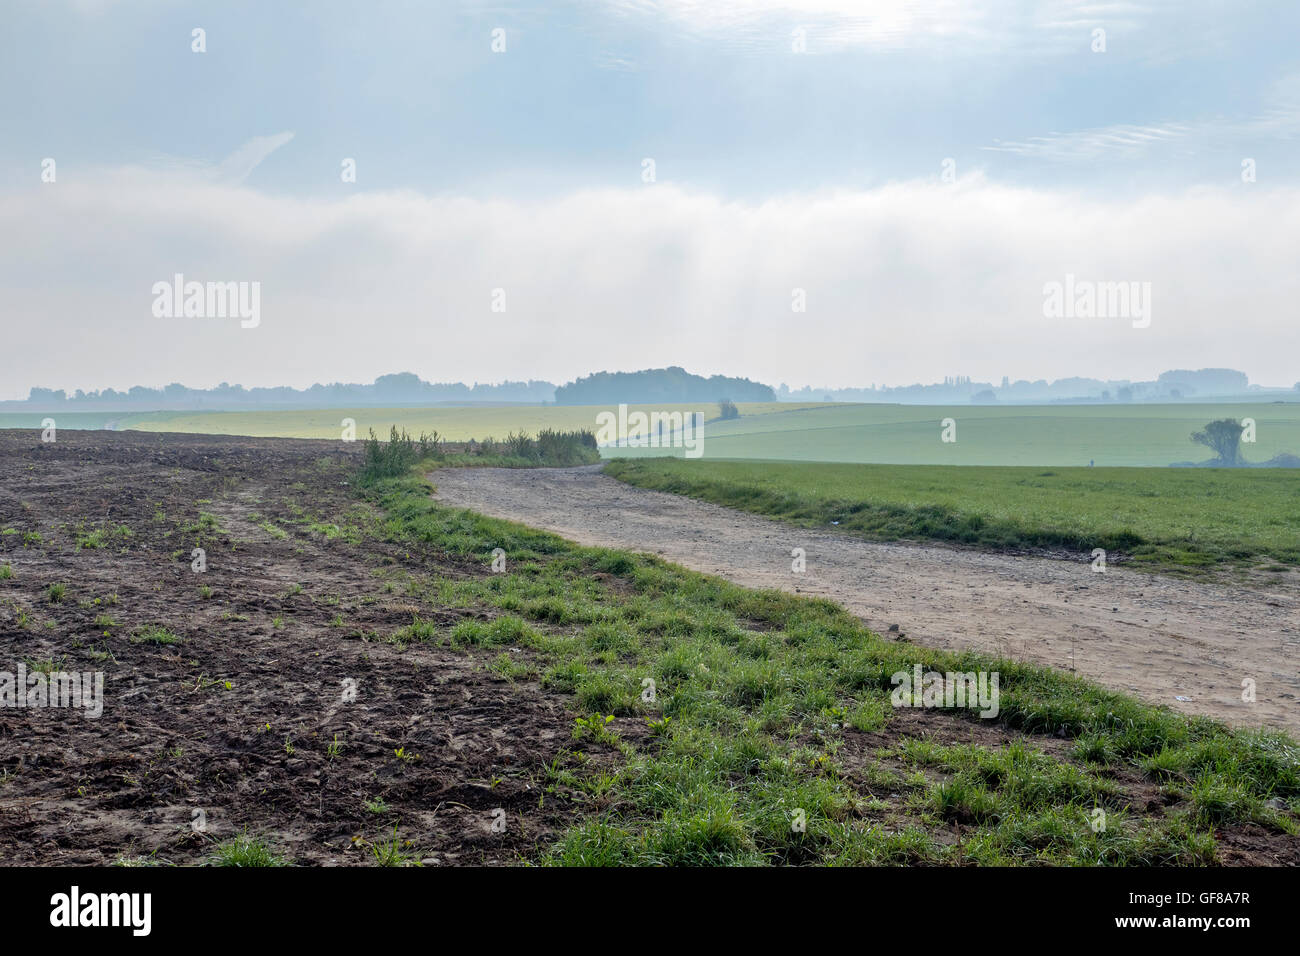 The Battle of Waterloo, Waterloo, Belgium - Battlefield: View from the British and allied positions looking south - Stock Image